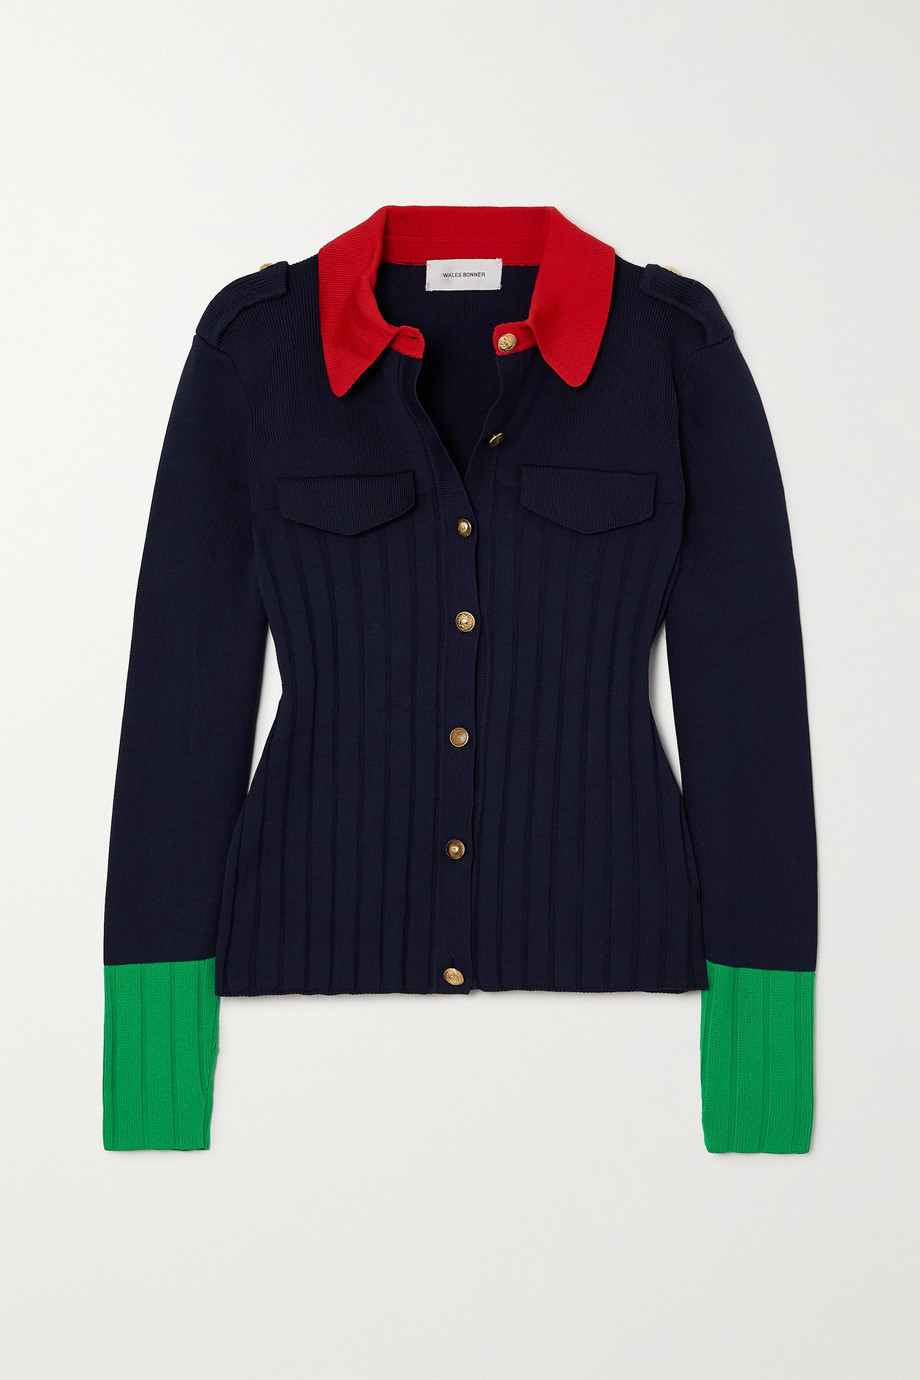 Wales Bonner Goto color-block ribbed-knit cardigan